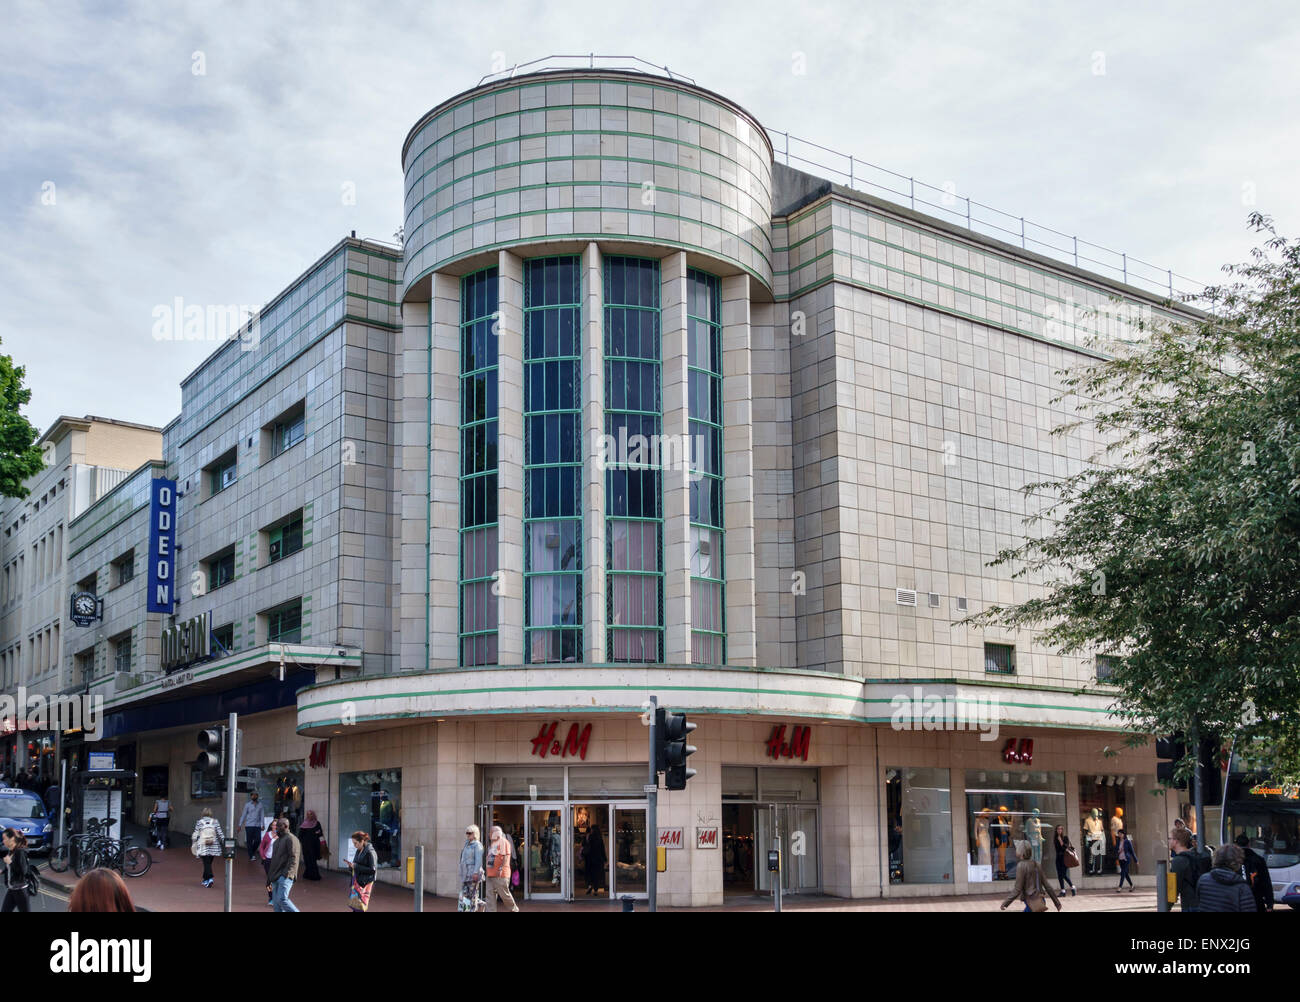 Broadmead, Bristol, UK. The Odeon Cinema, Built in 1939 - Stock Image